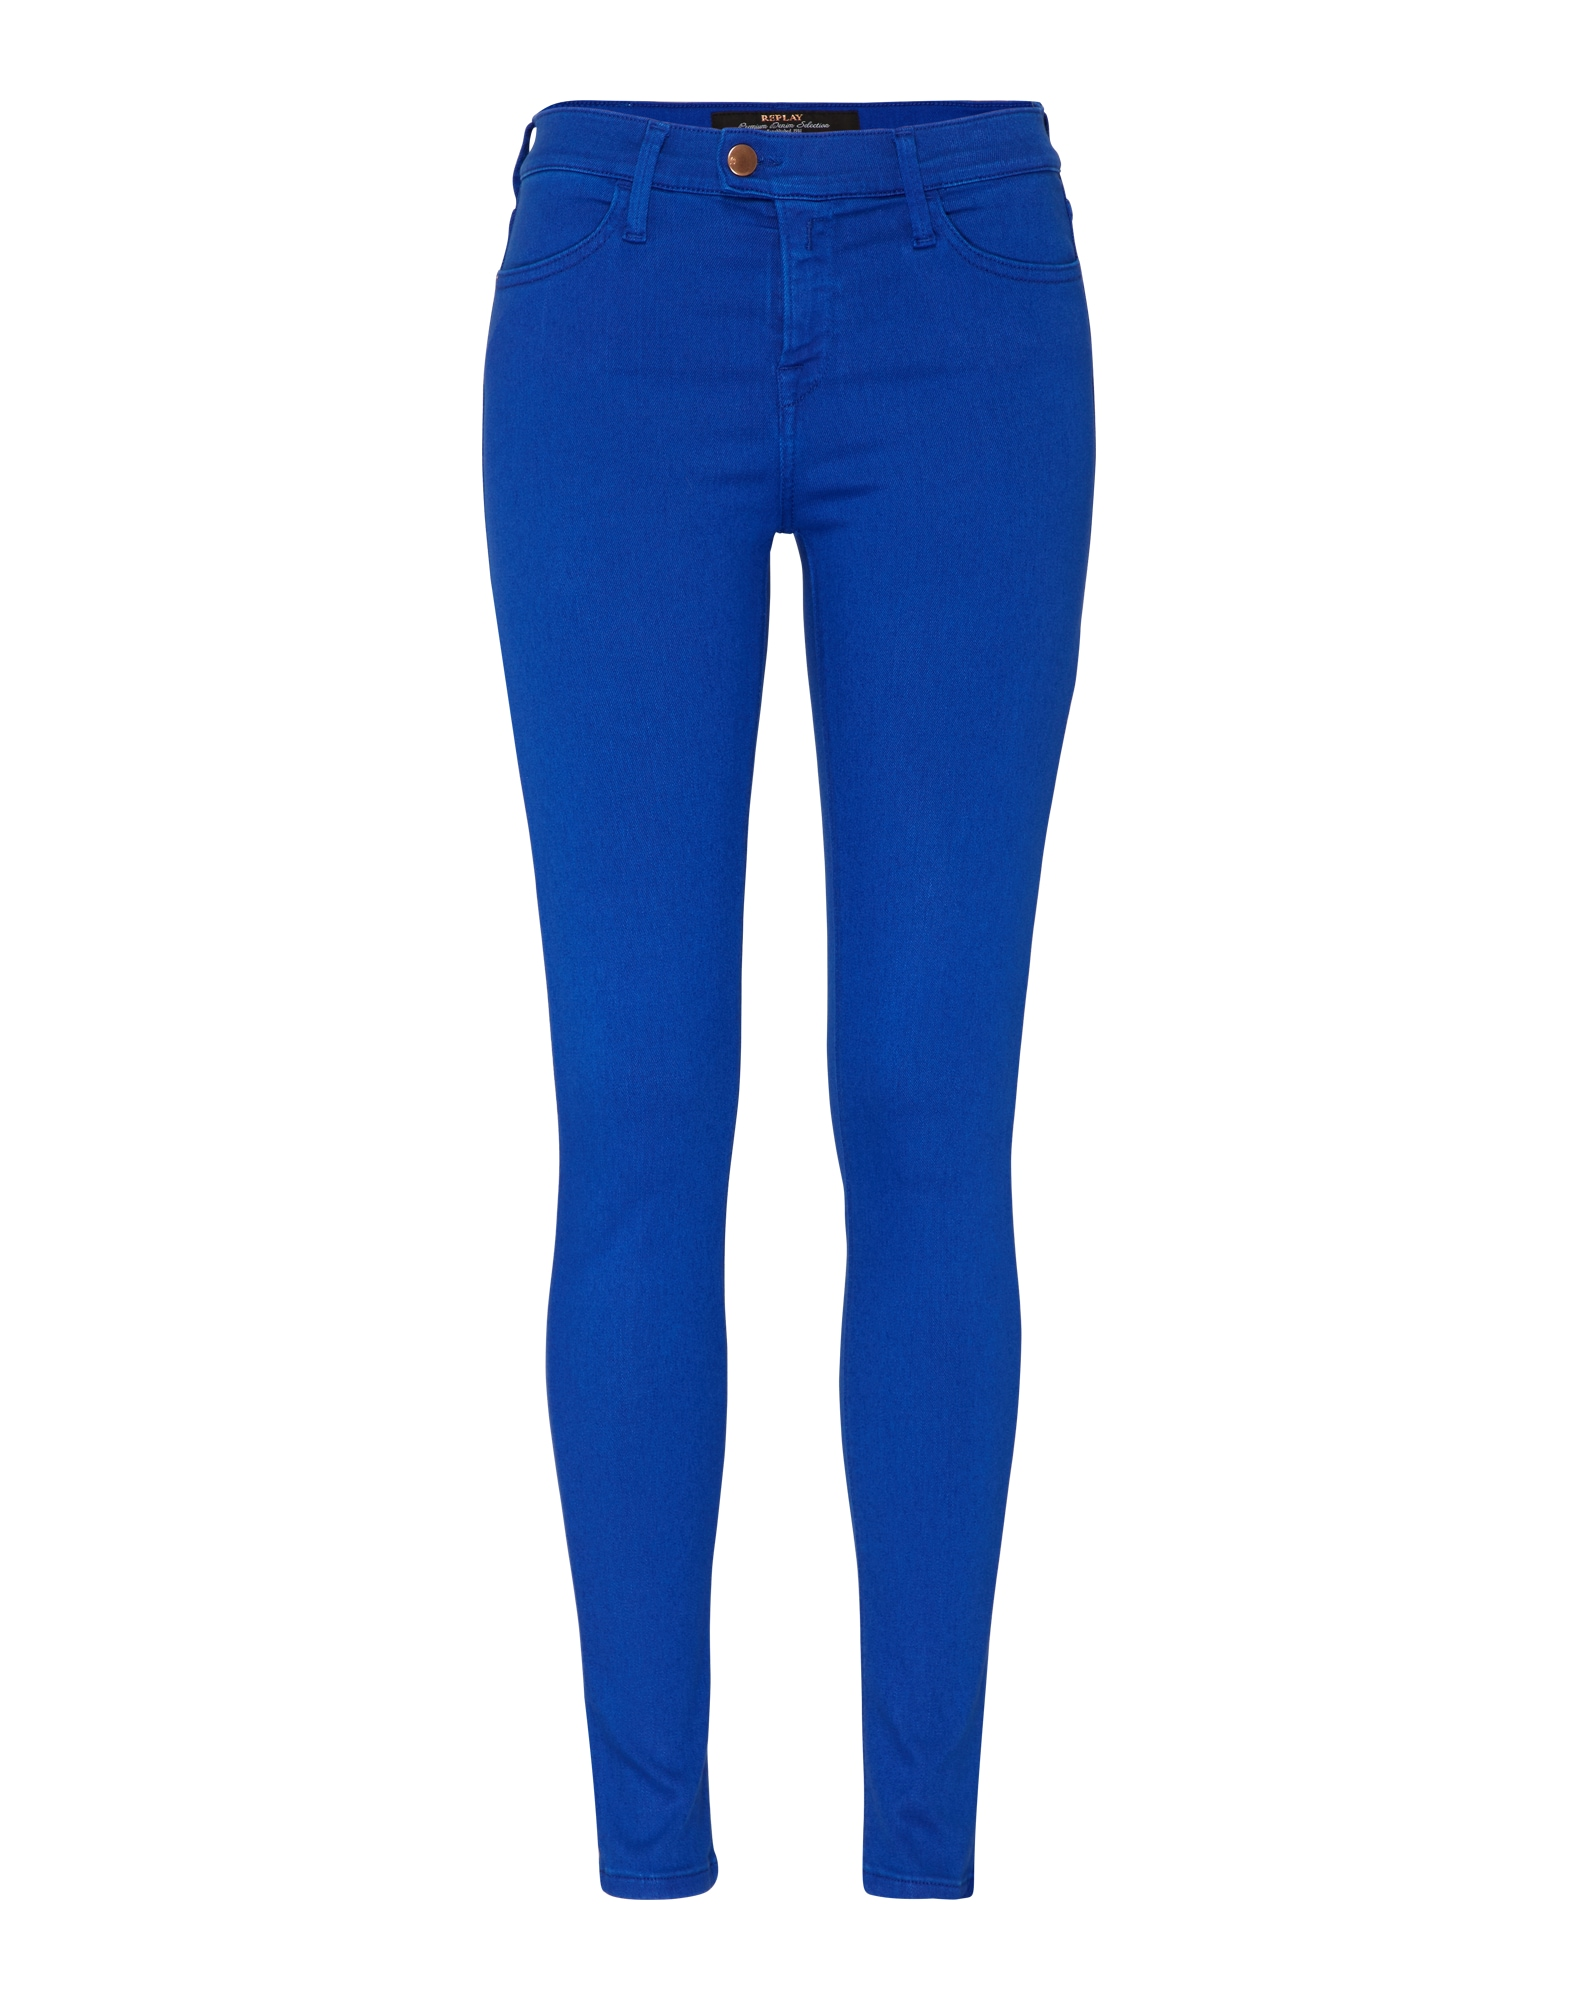 REPLAY Dames Jeans Touch blauw